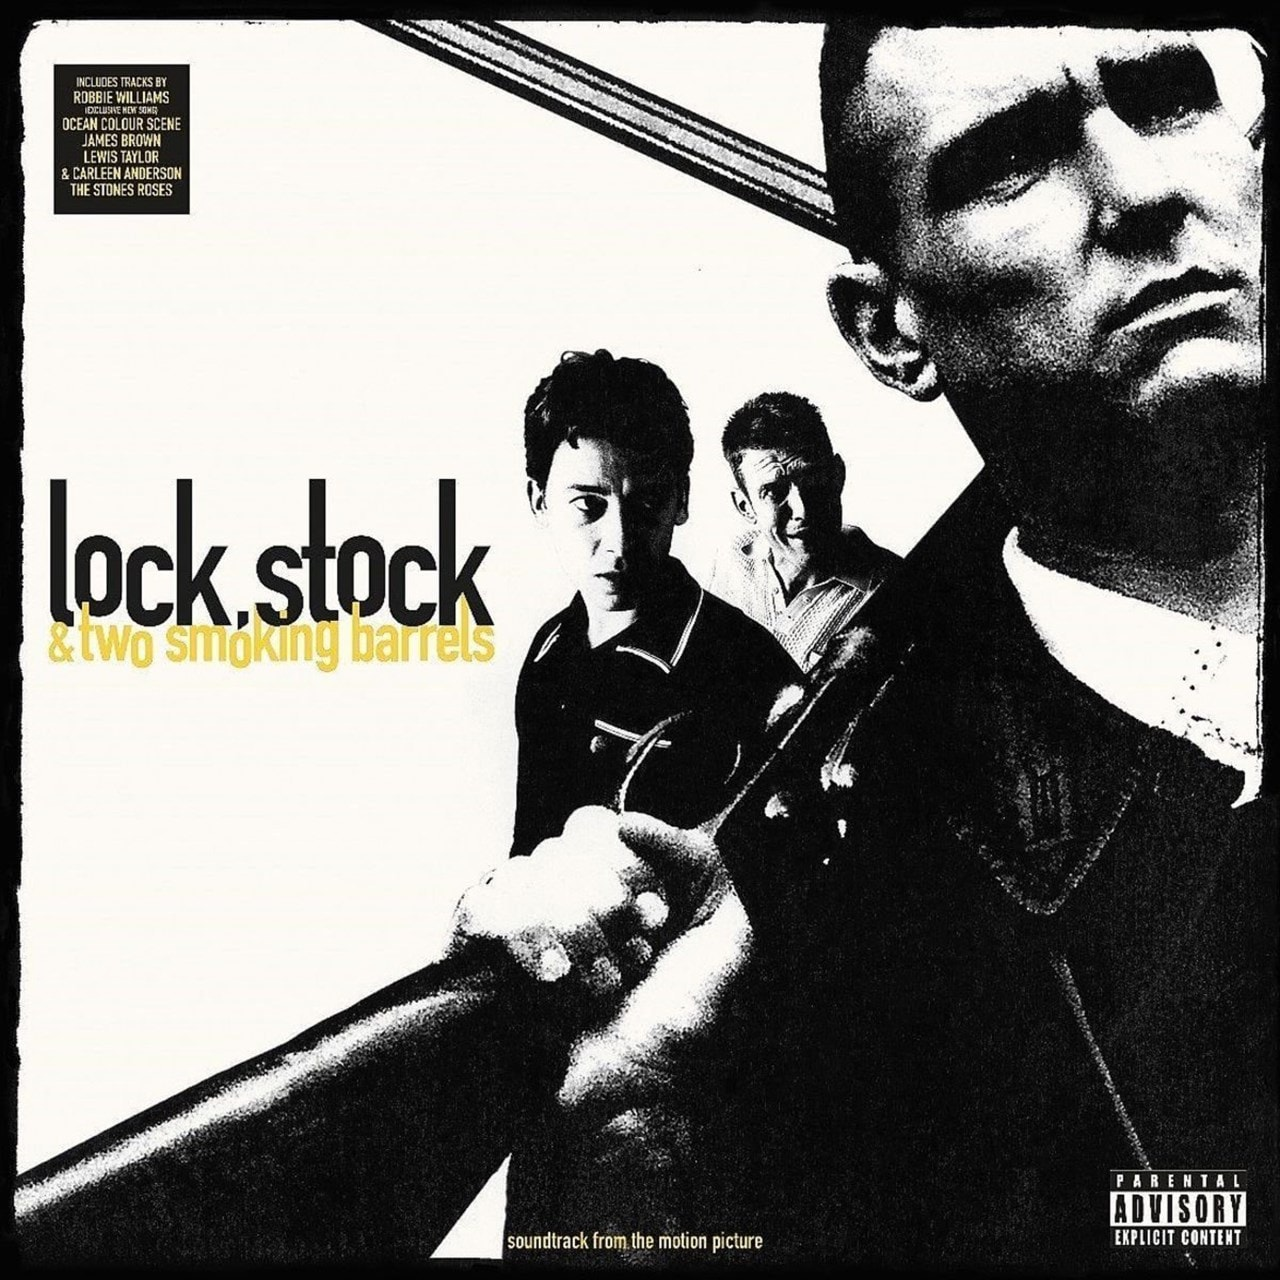 Lock, Stock & Two Smoking Barrels - 1